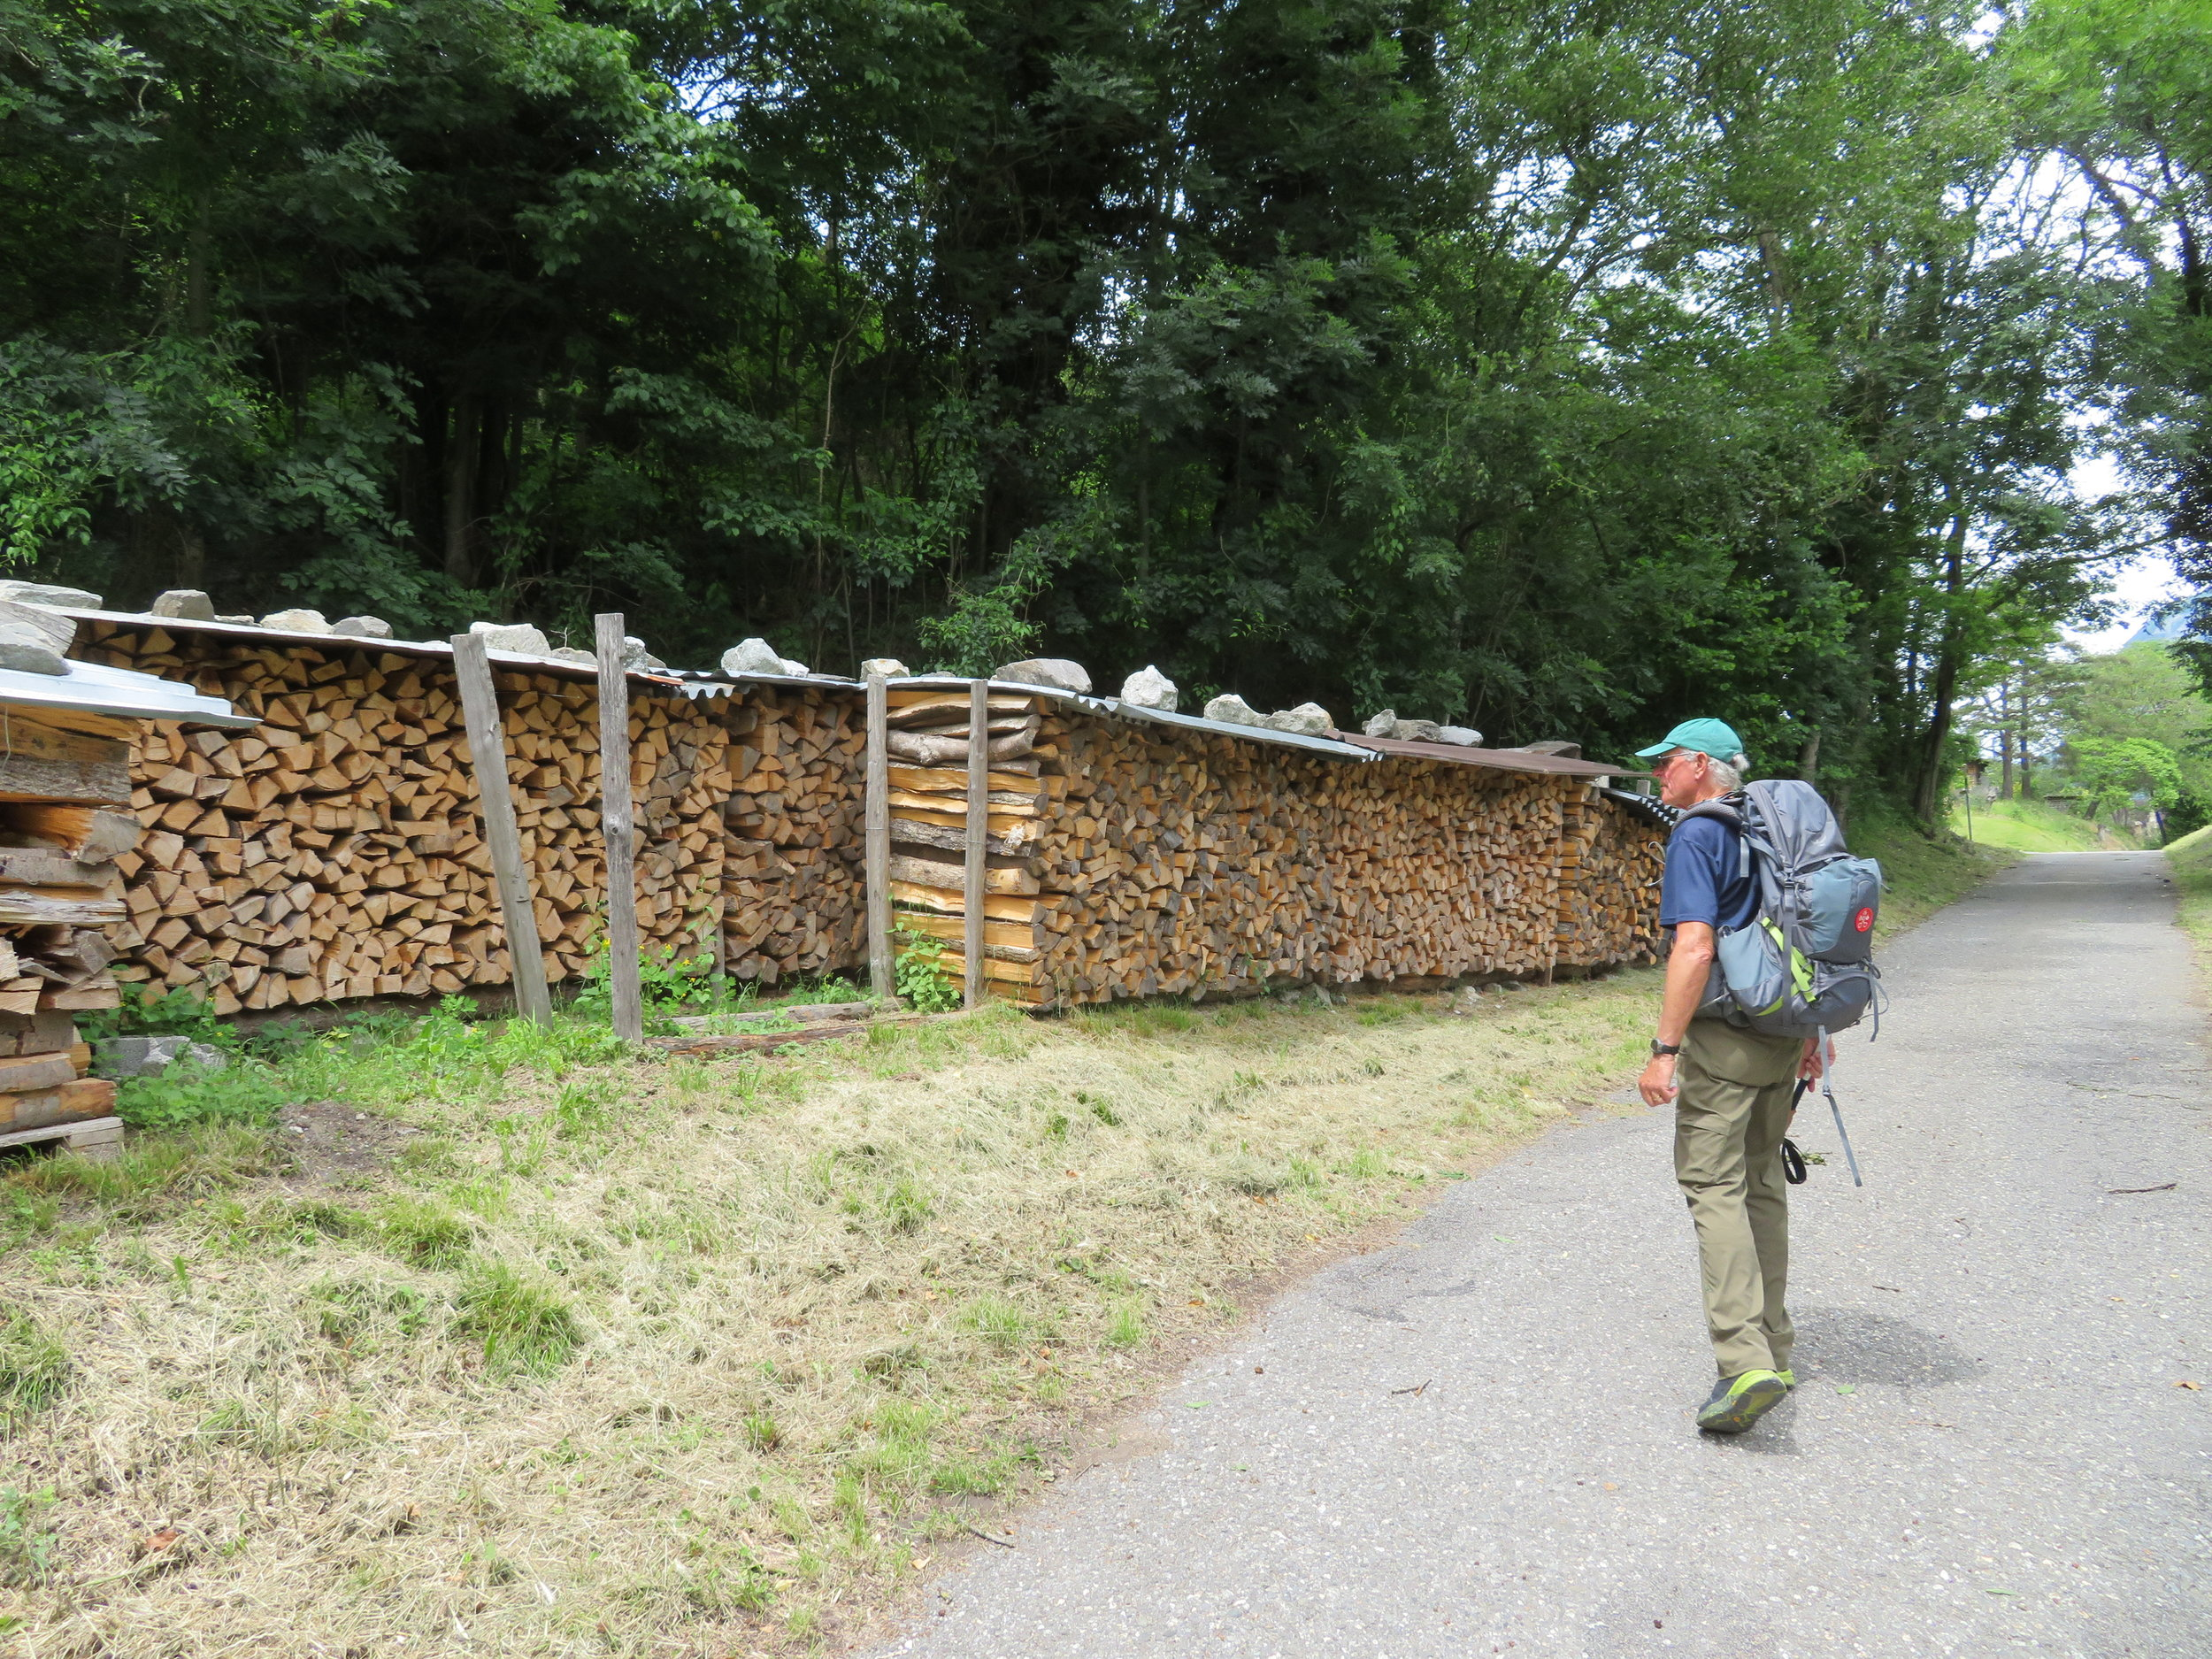 Even stacking firewood was an art form in Switzerland